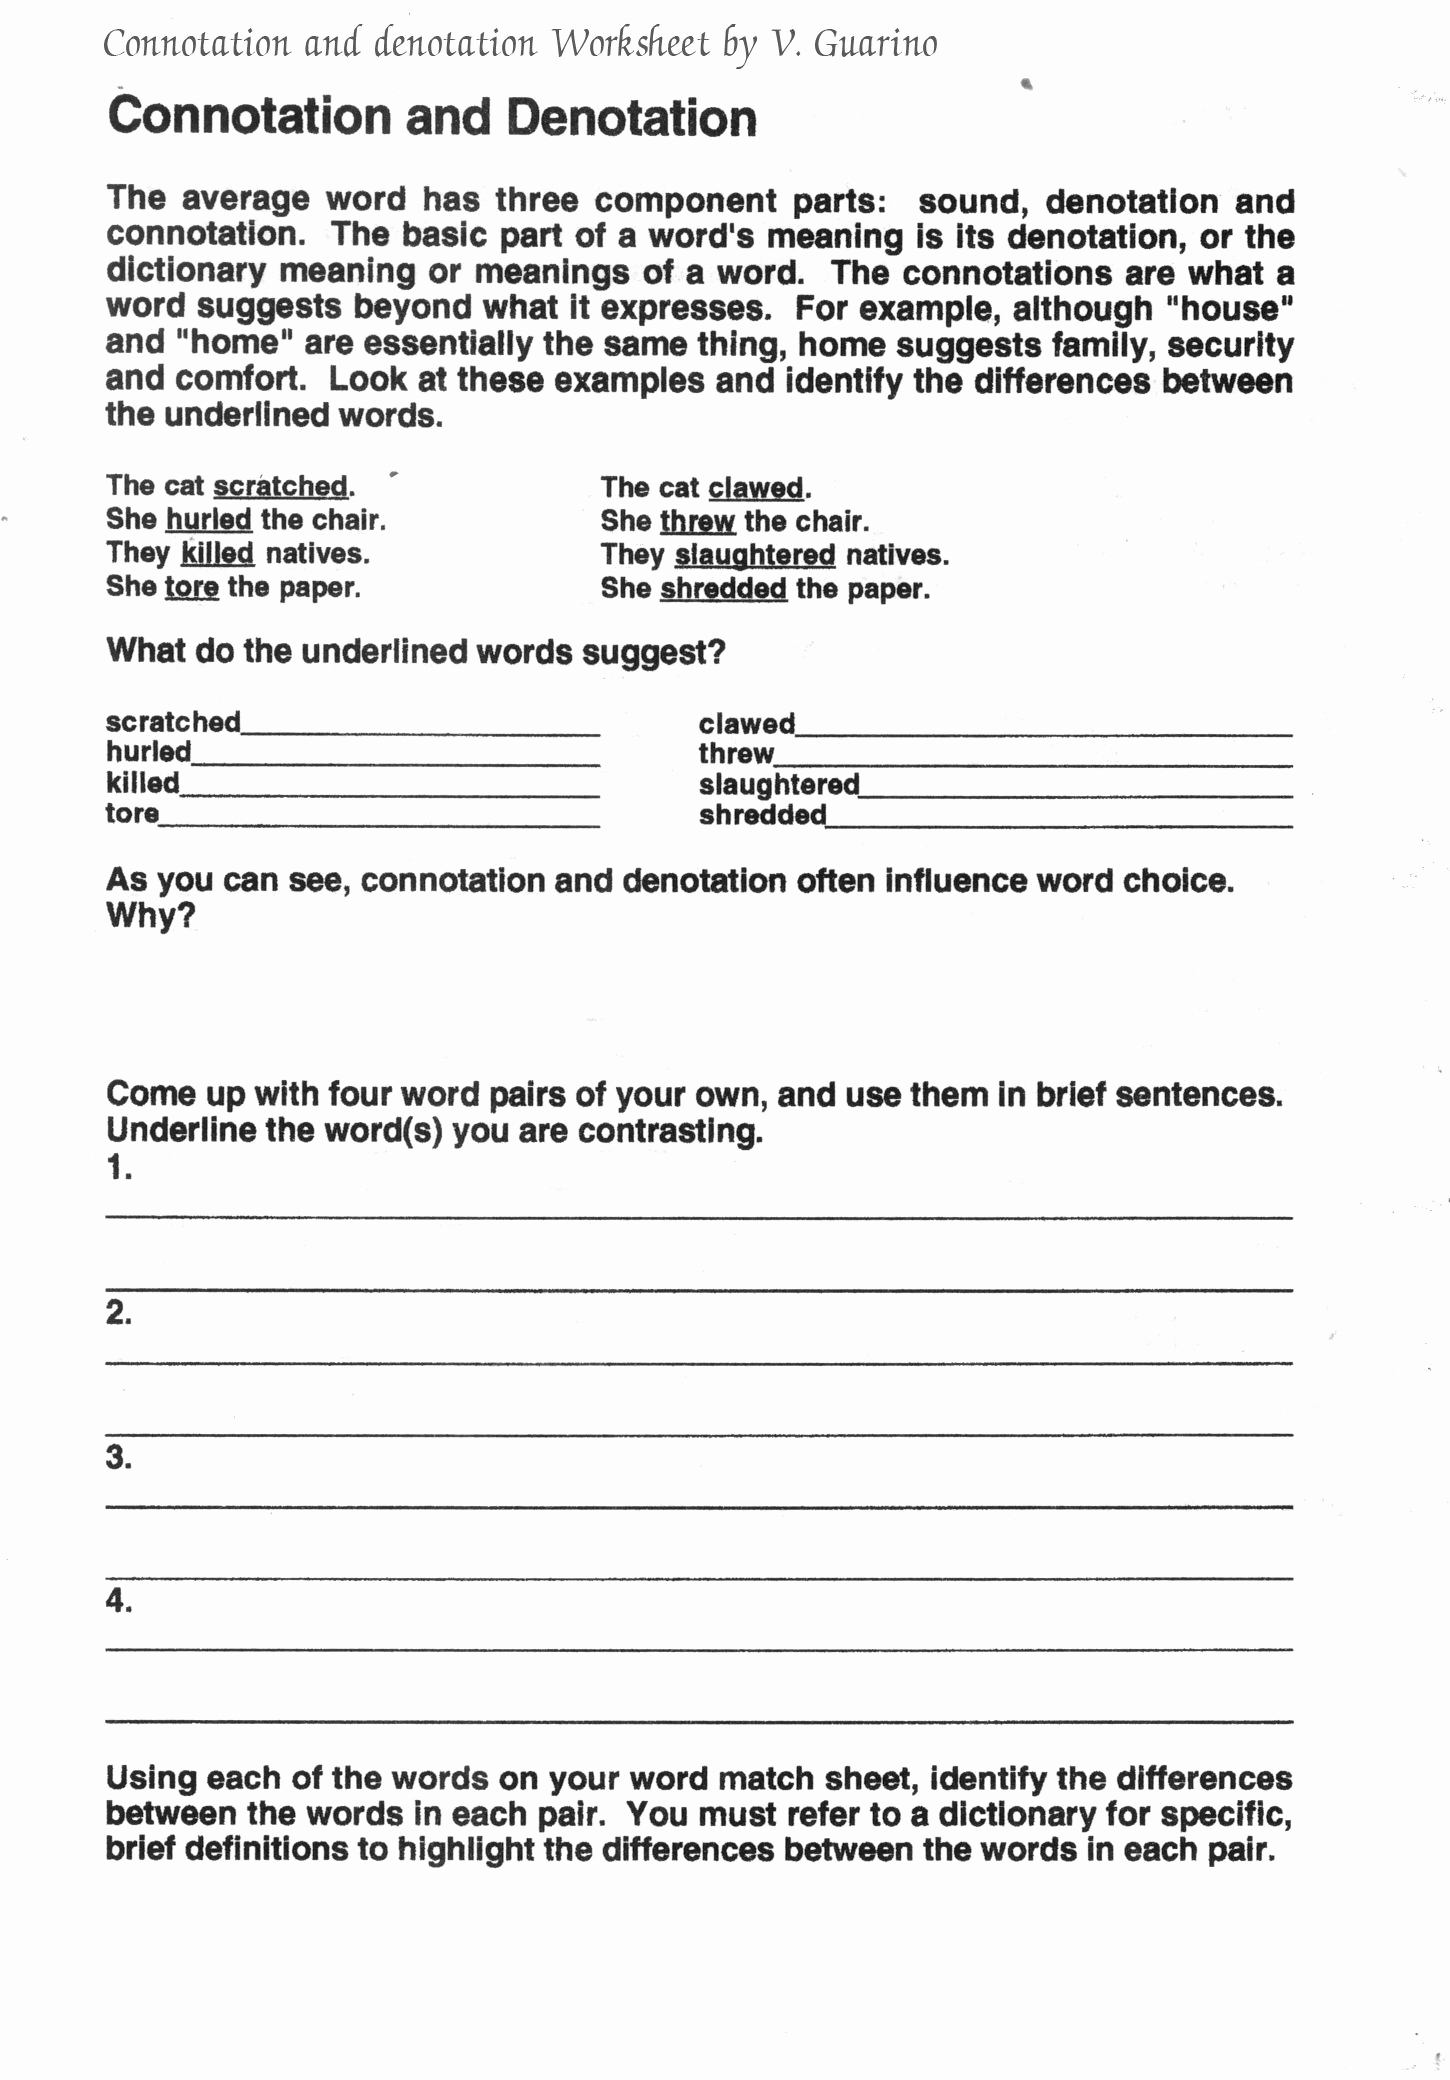 Middle School Life Skills Worksheets Awesome Connotation and Denotation Worksheets for Middle School